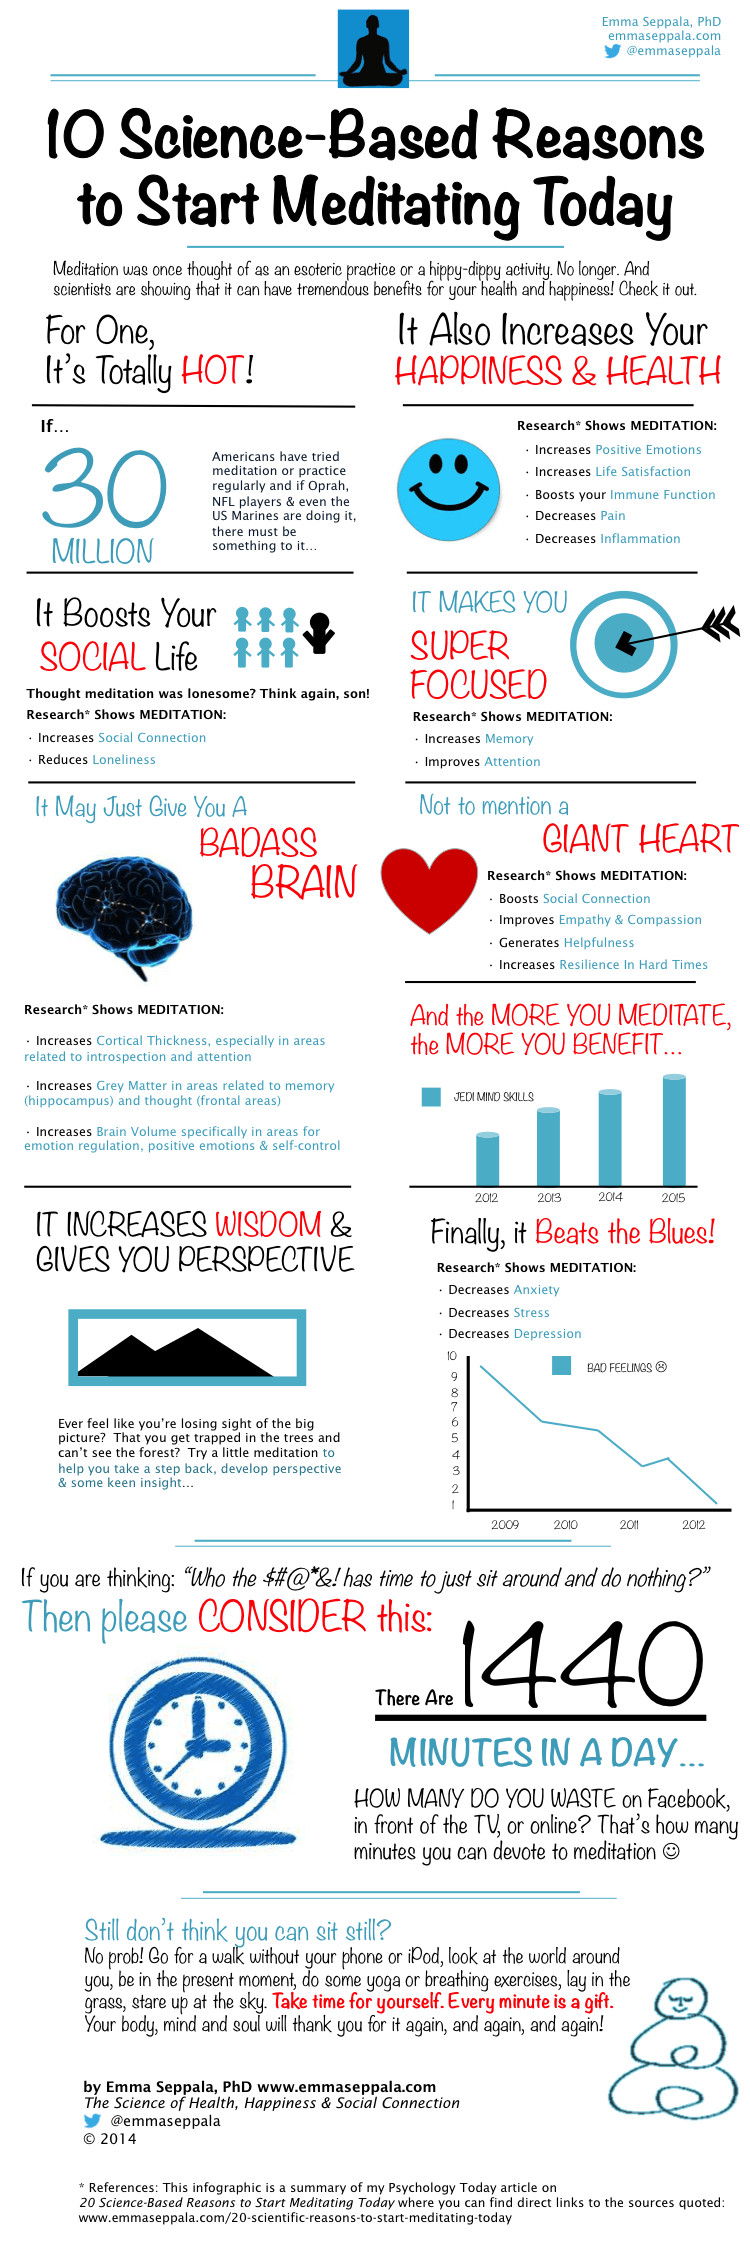 10 Science-Based Reasons To Start Meditating Today INFOGRAPHIC